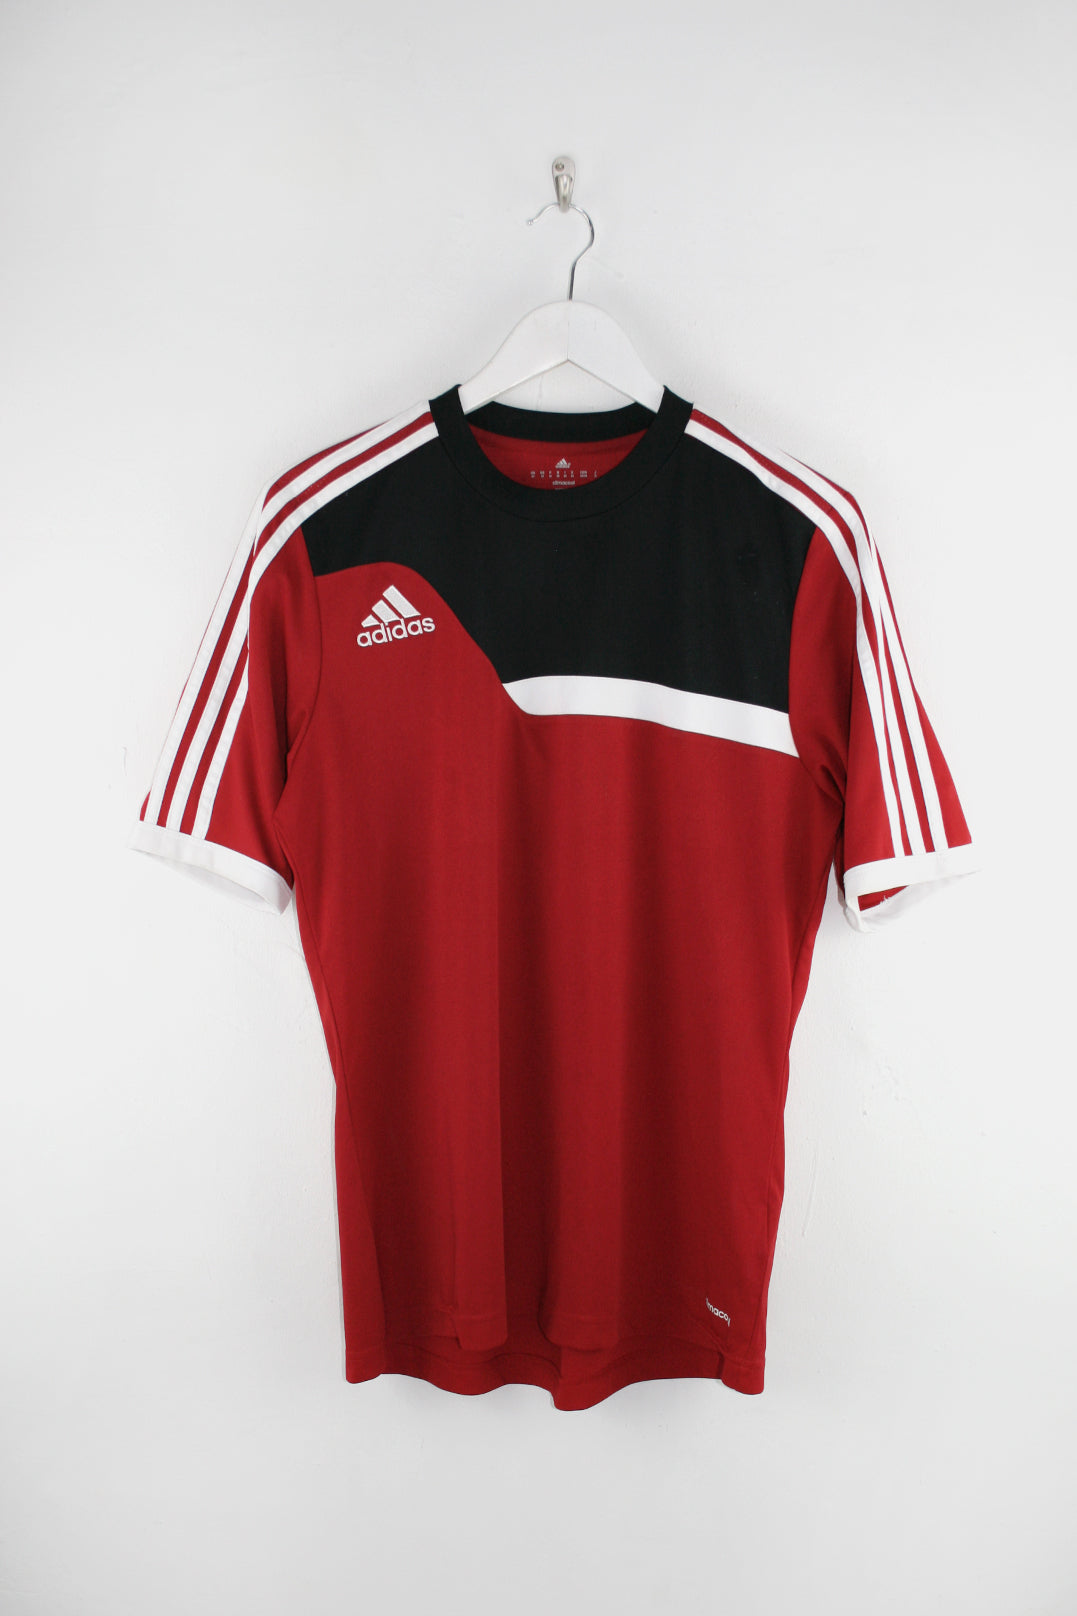 Adidas Climacool T